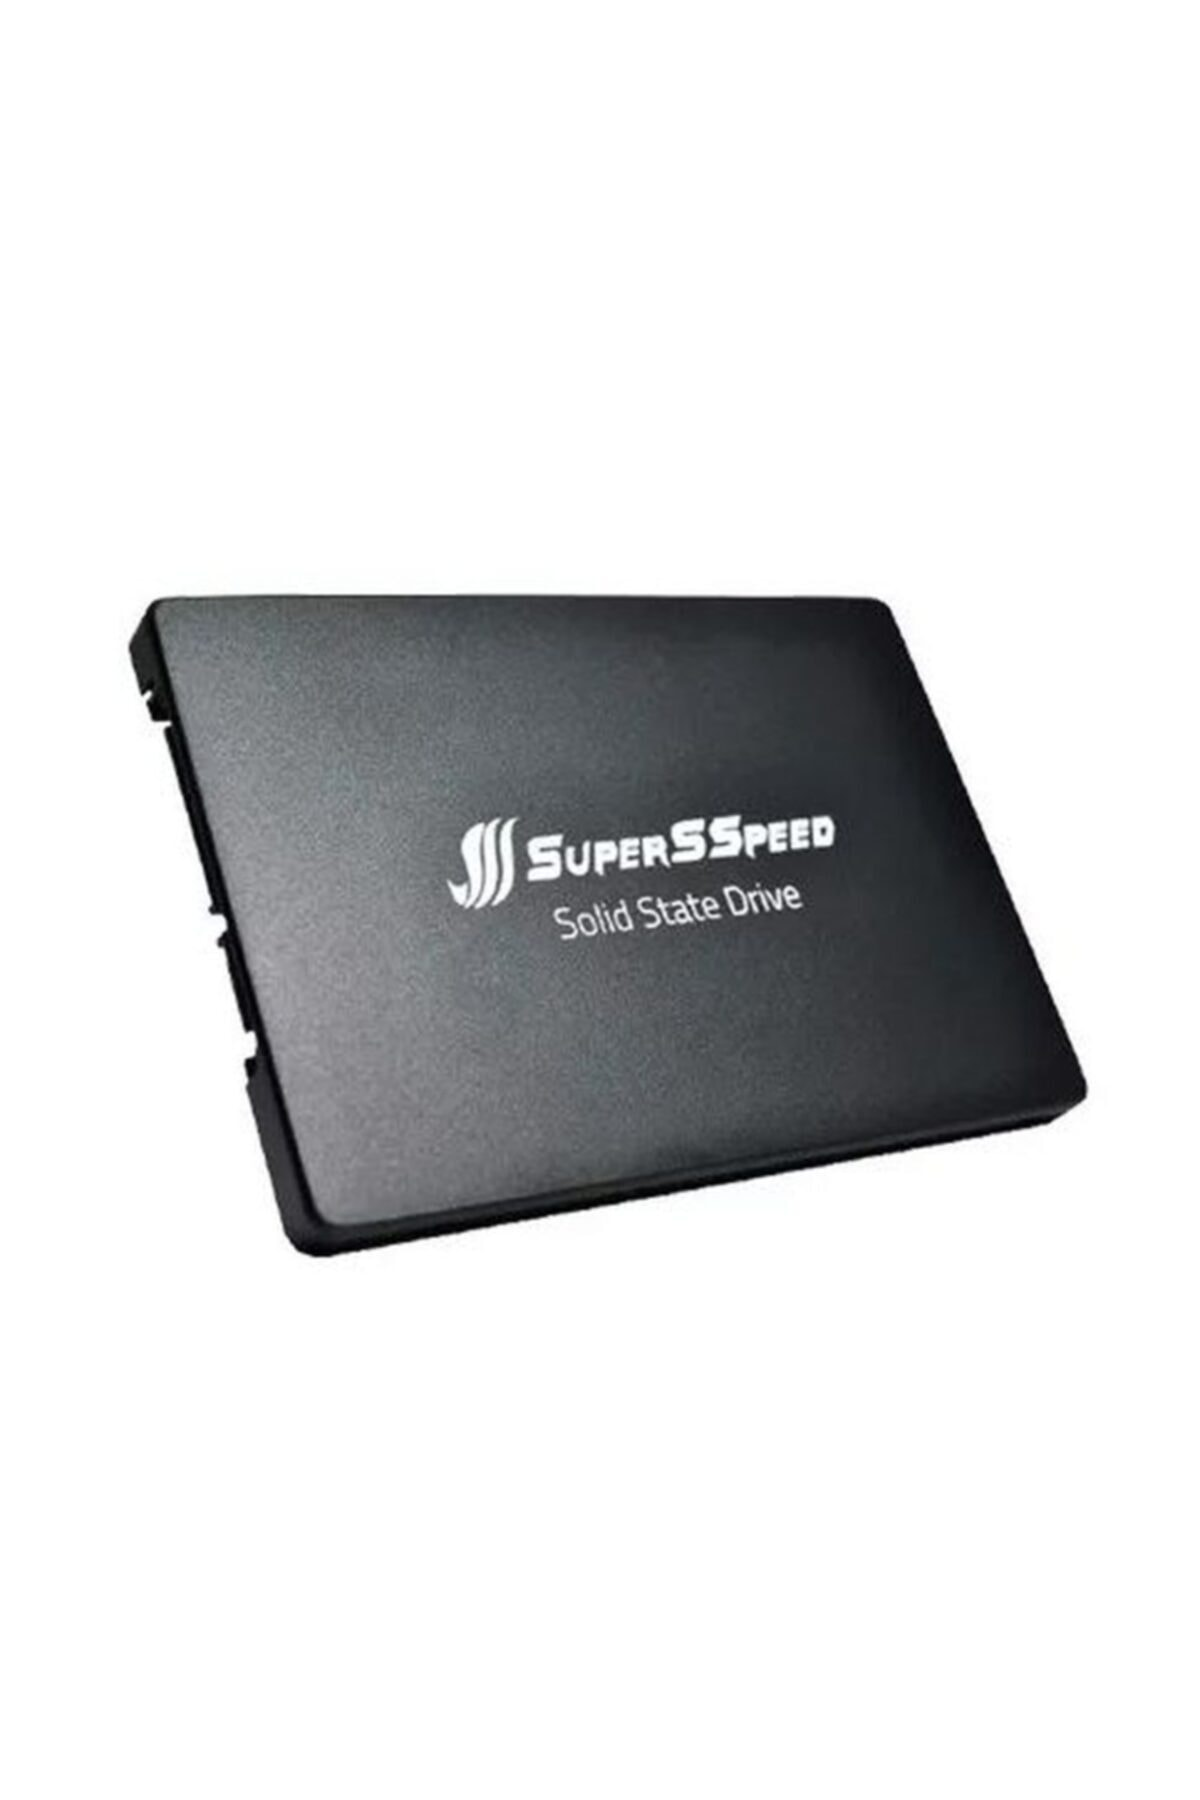 Supersspeed 120gb Intel 3d Nand Ssd Hafıza Bellek 2,5'